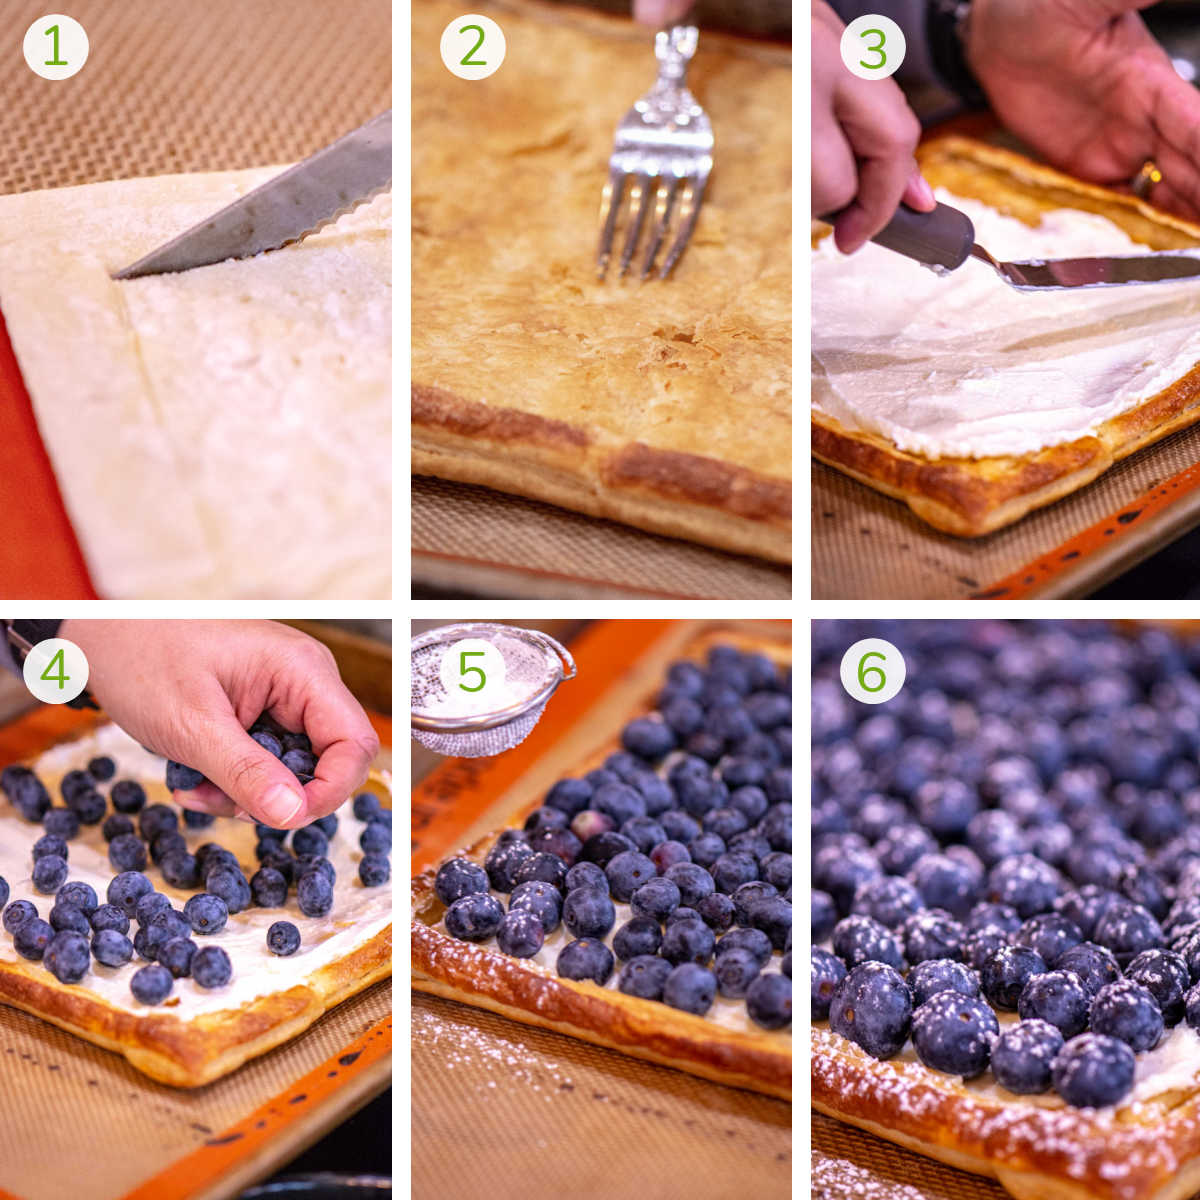 several process photos showing preparing the puff pastry, adding the cream cheese and layering the blueberries on the tart.